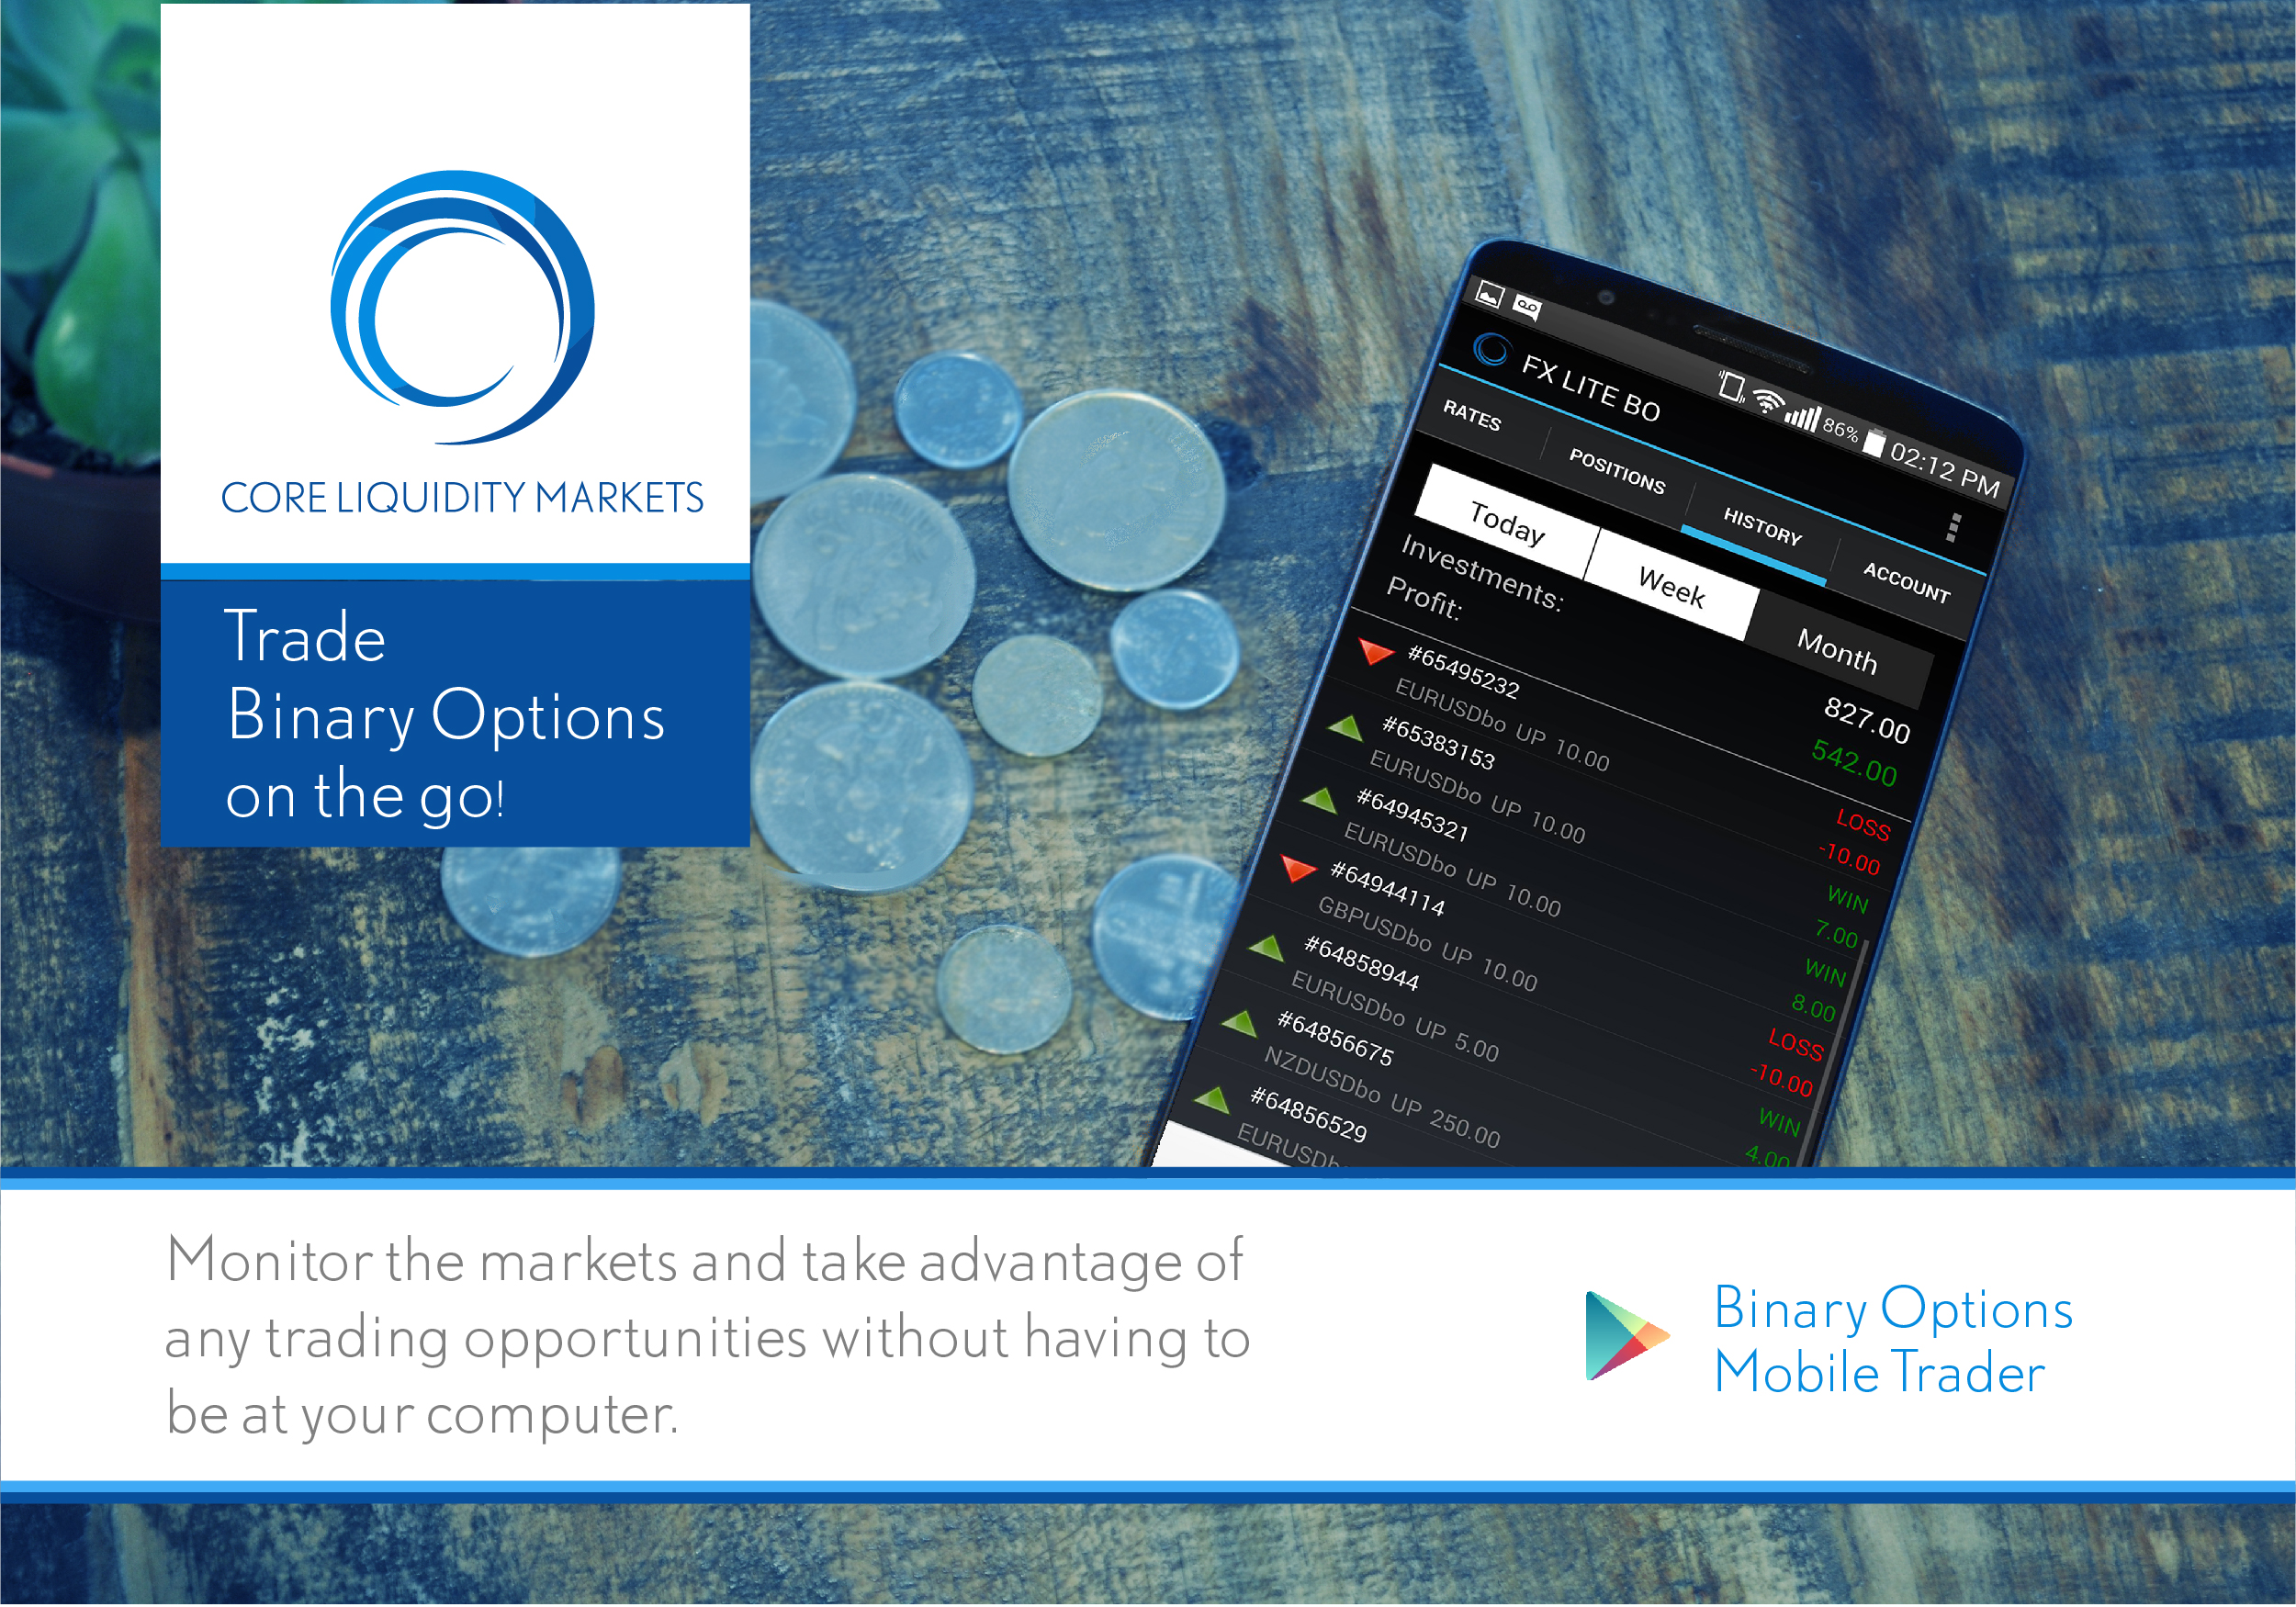 Binary Options Mobile Trader